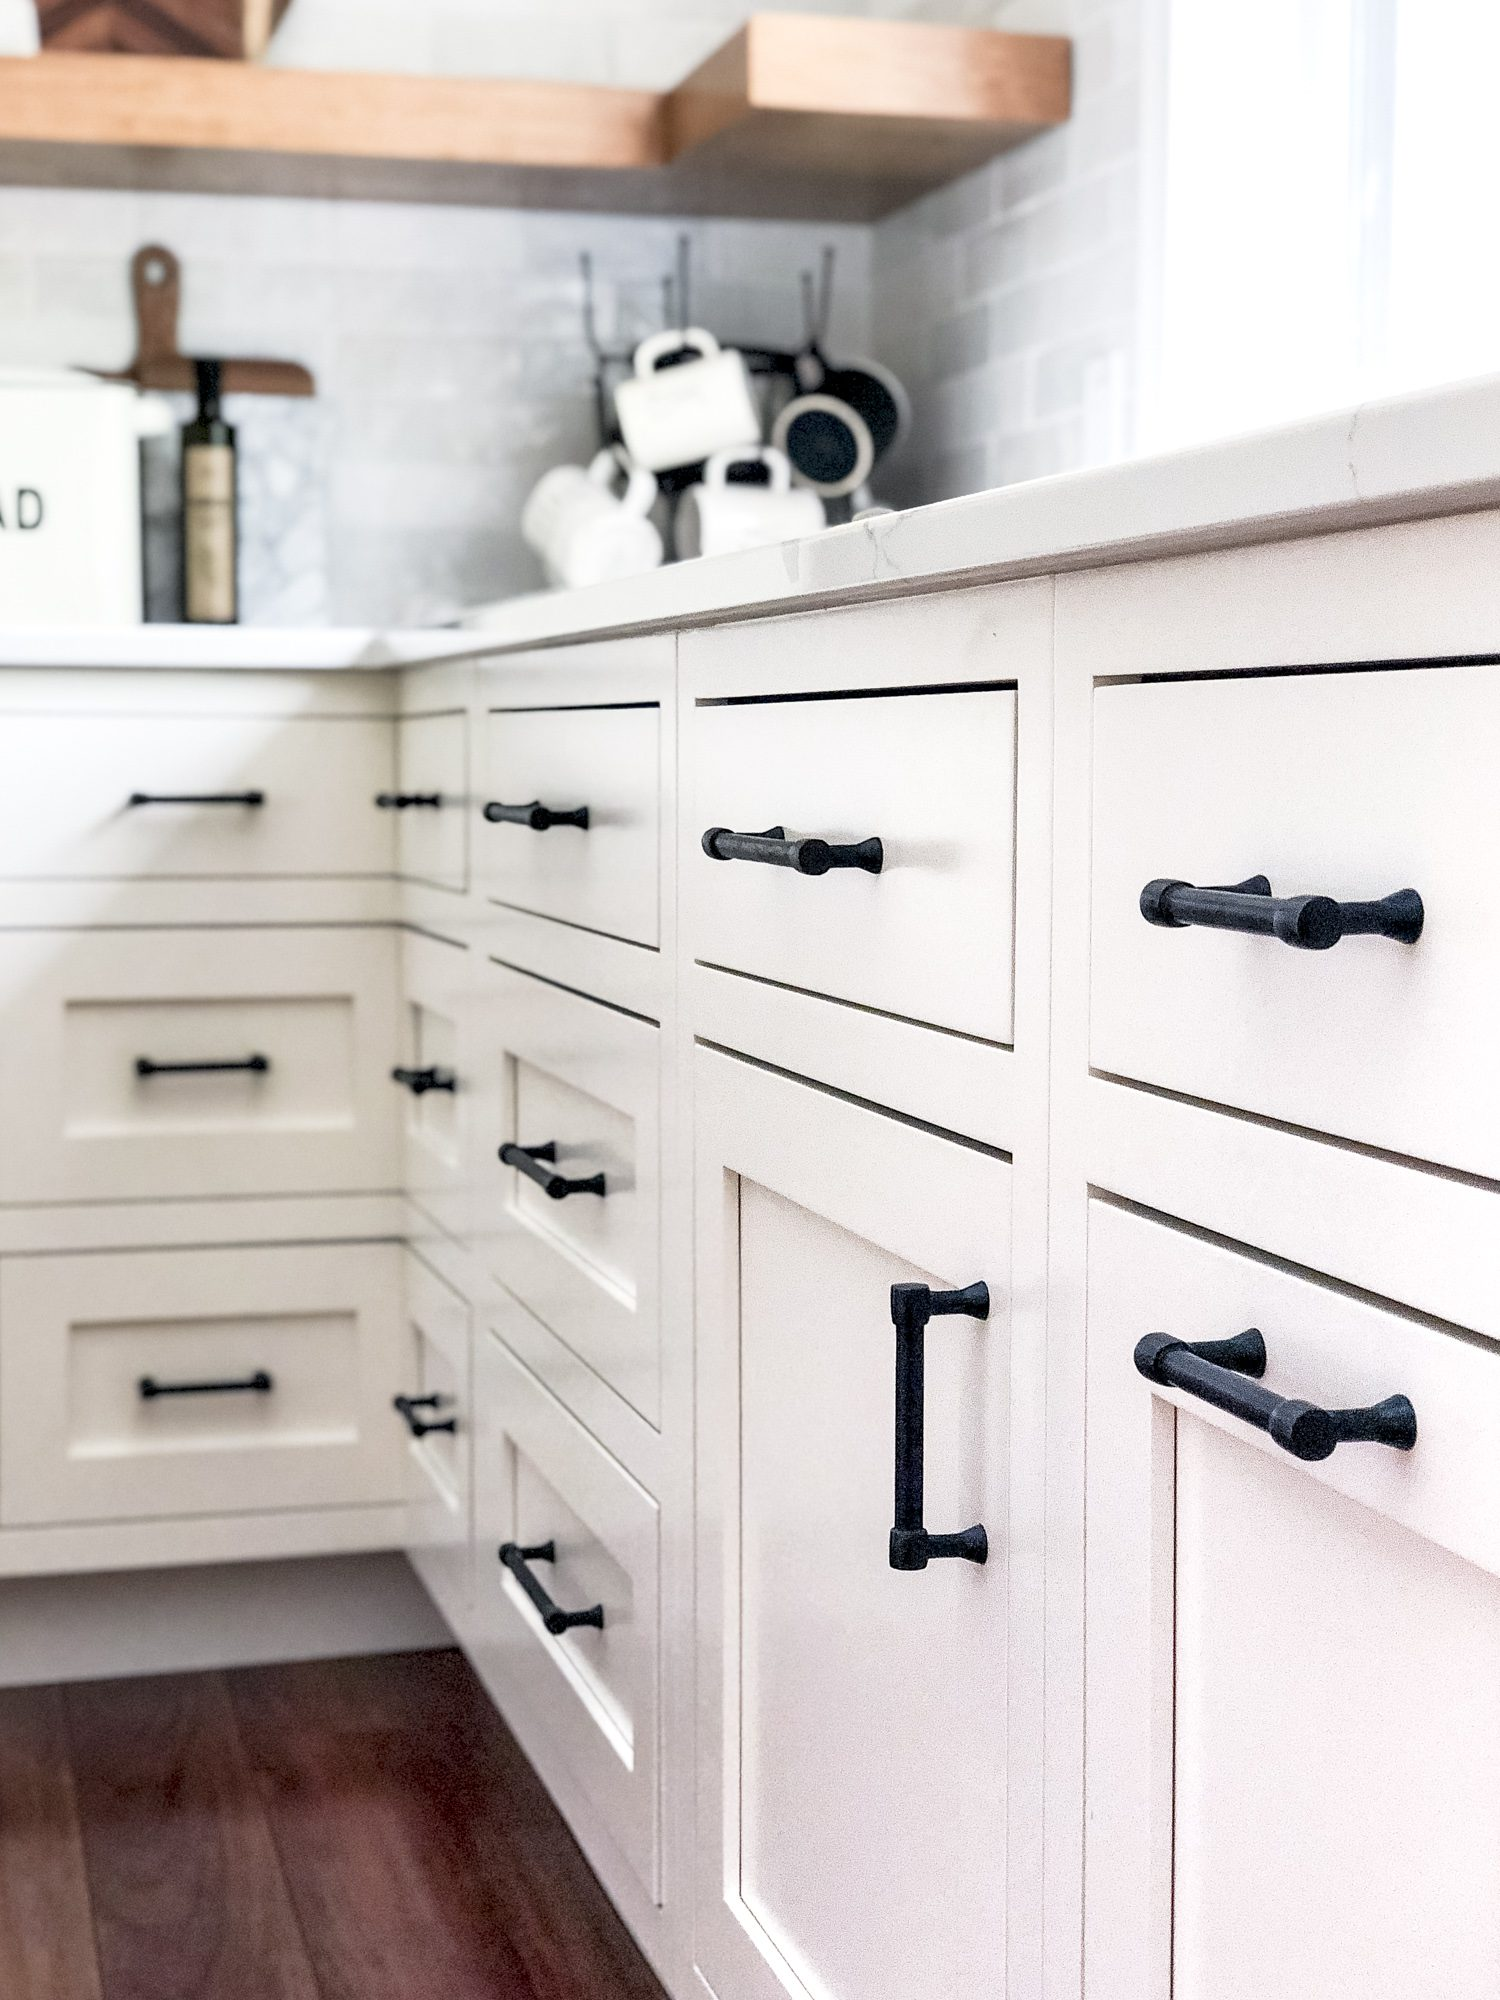 Do you love modern farmhouse style? Here are tips for how to use a black kitchen sink to anchor your kitchen remodel design. Plus, how to mix finishes! #fromhousetohaven #blackfarmhousesink #farmhousesink